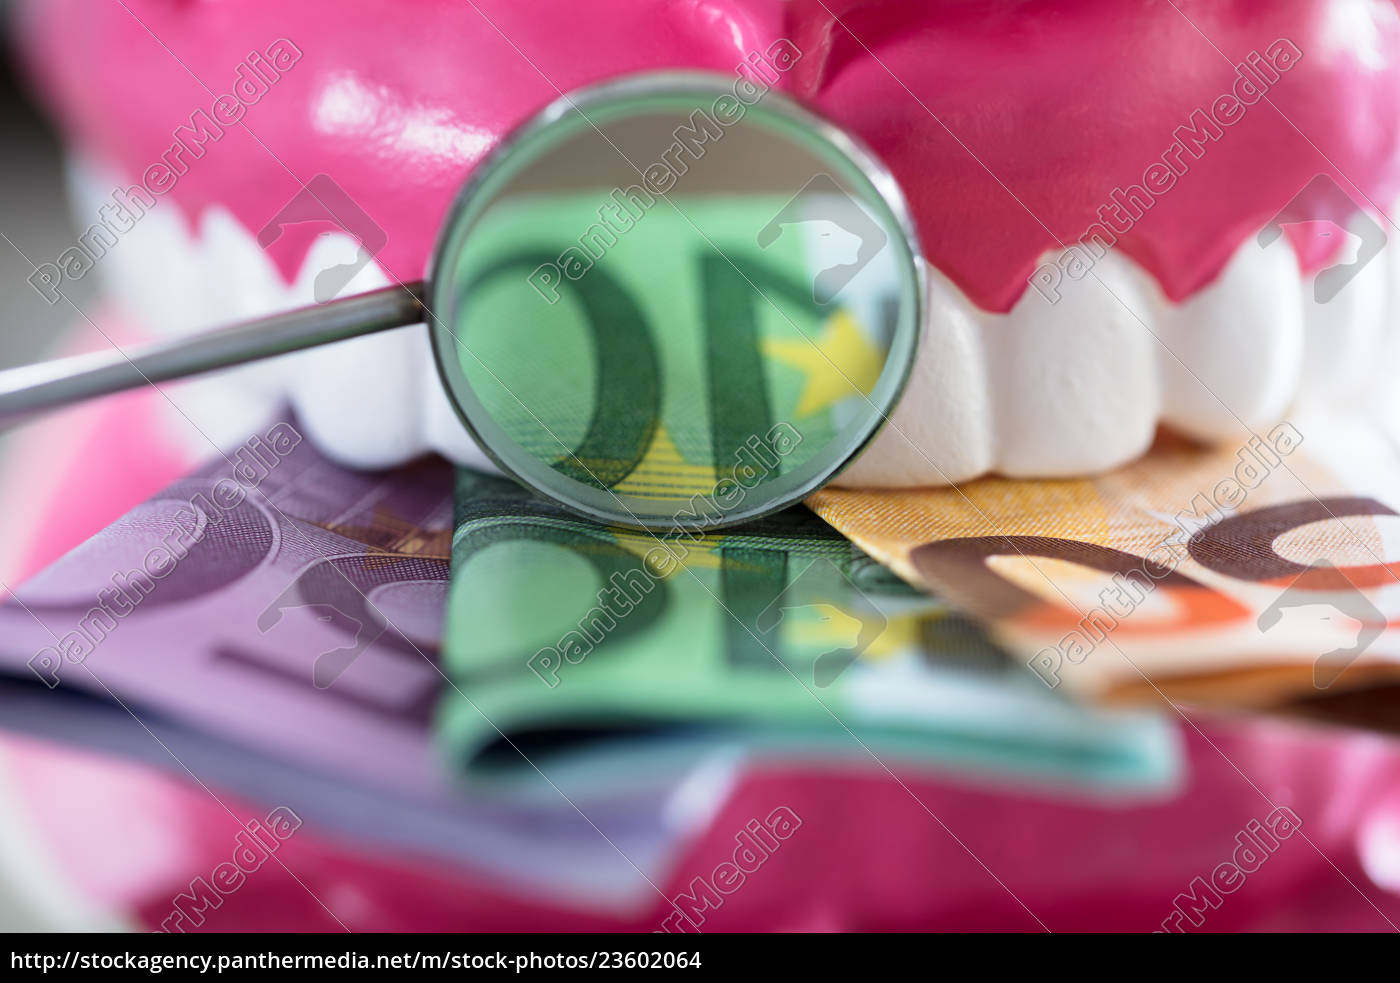 close-up, of, denture, with, banknote - 23602064